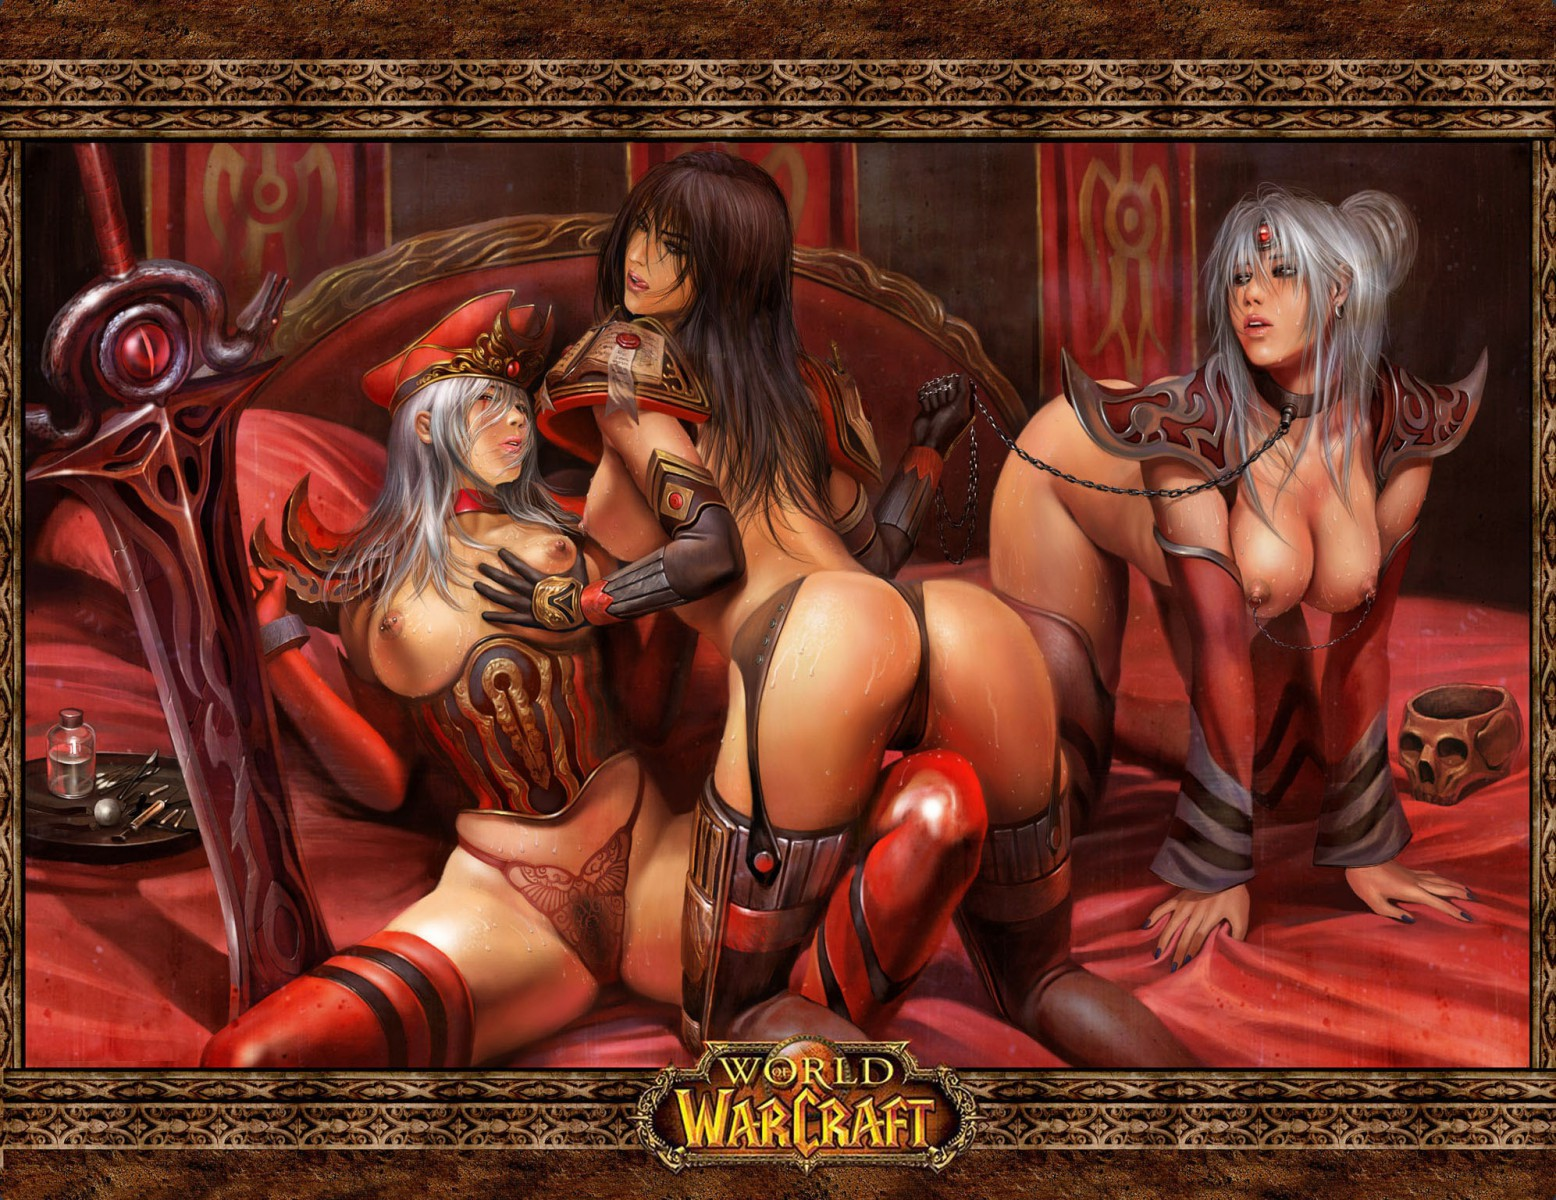 3d World of Warcraft porn 2 user  porn tubes